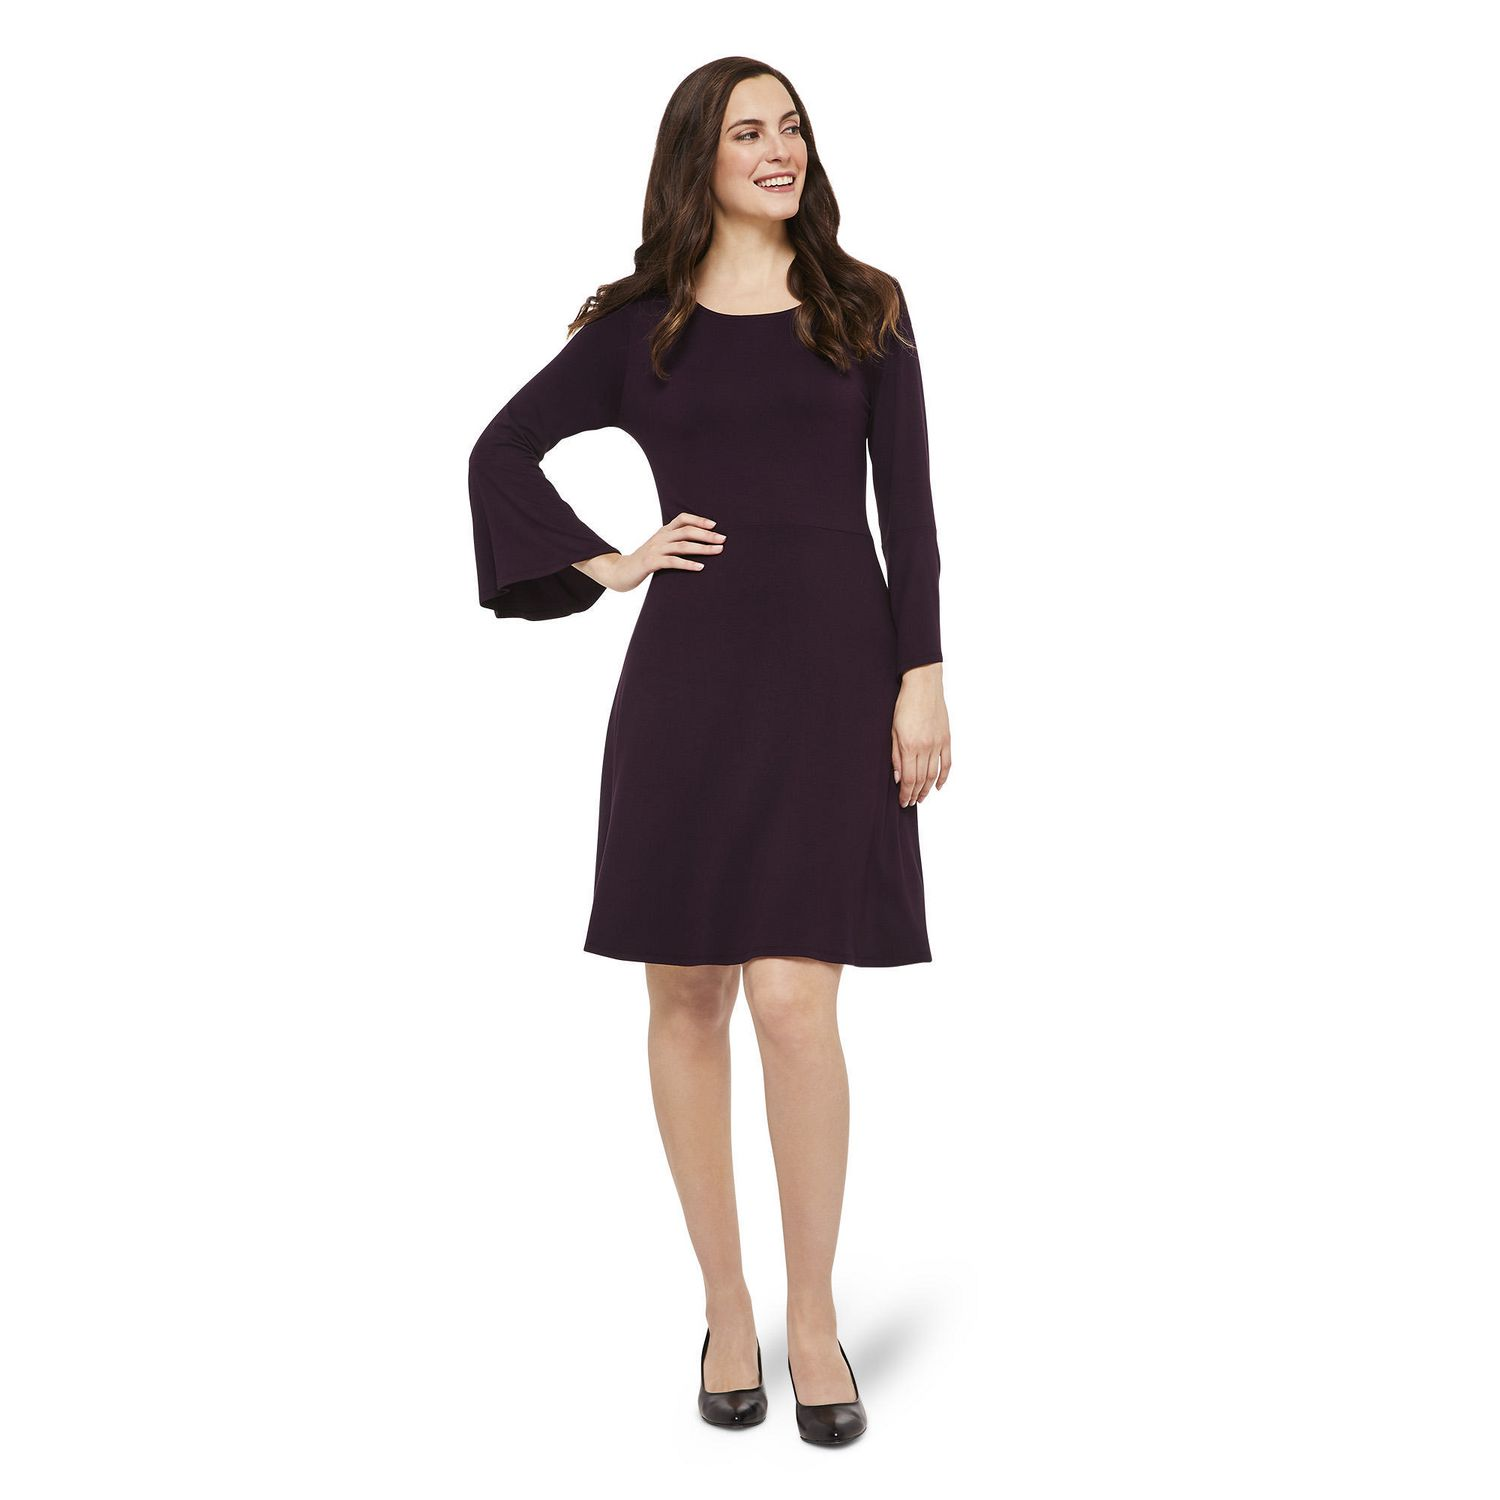 George Women S Skater Dress With Bell Sleeves Walmart Canada